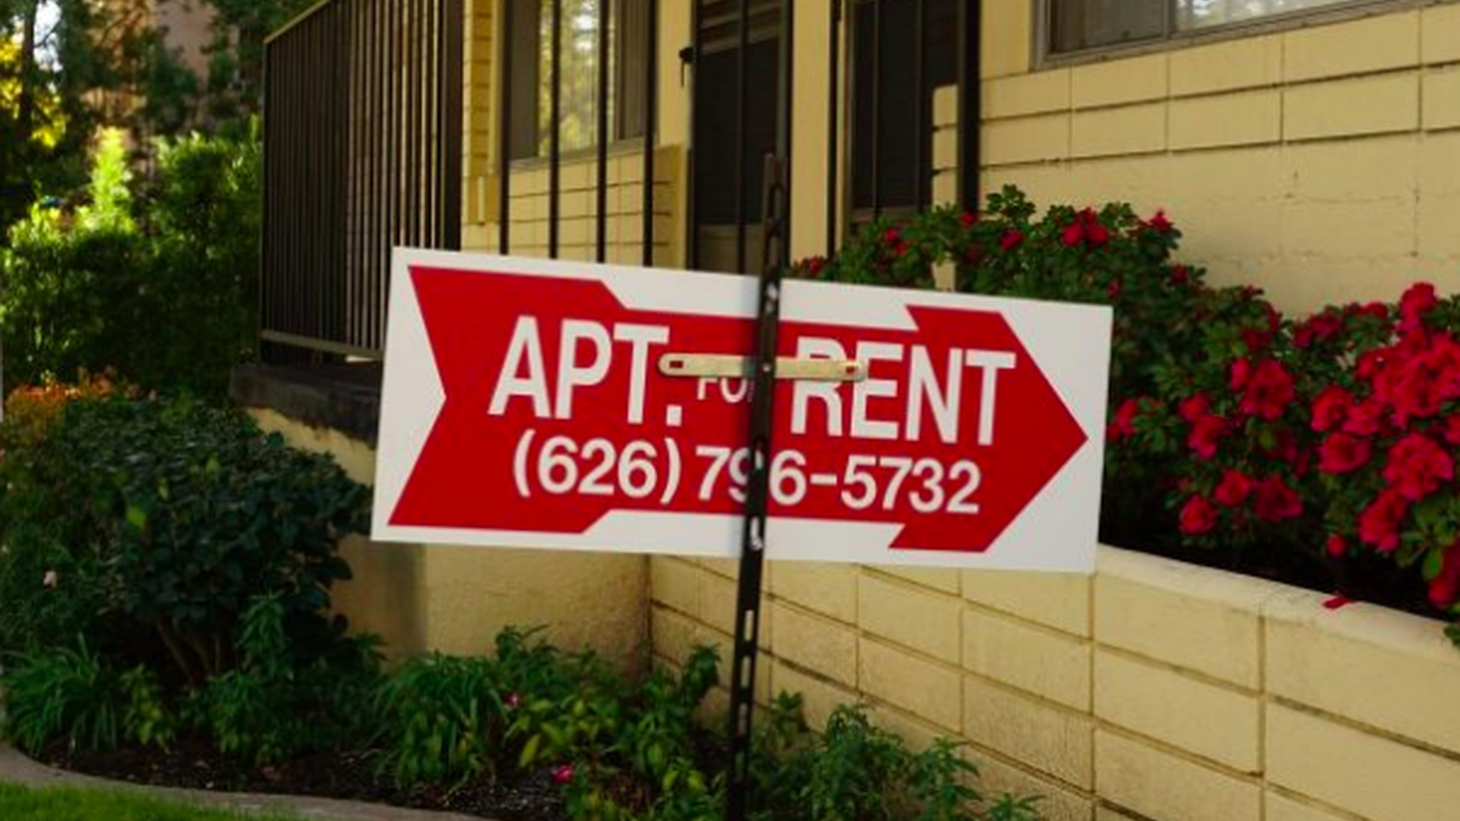 Santa Monica has had rent control since 1979, but today it's one of the most expensive rental markets in the country. While rent control benefits some, is it really the best thing for a region facing ever rising housing costs?